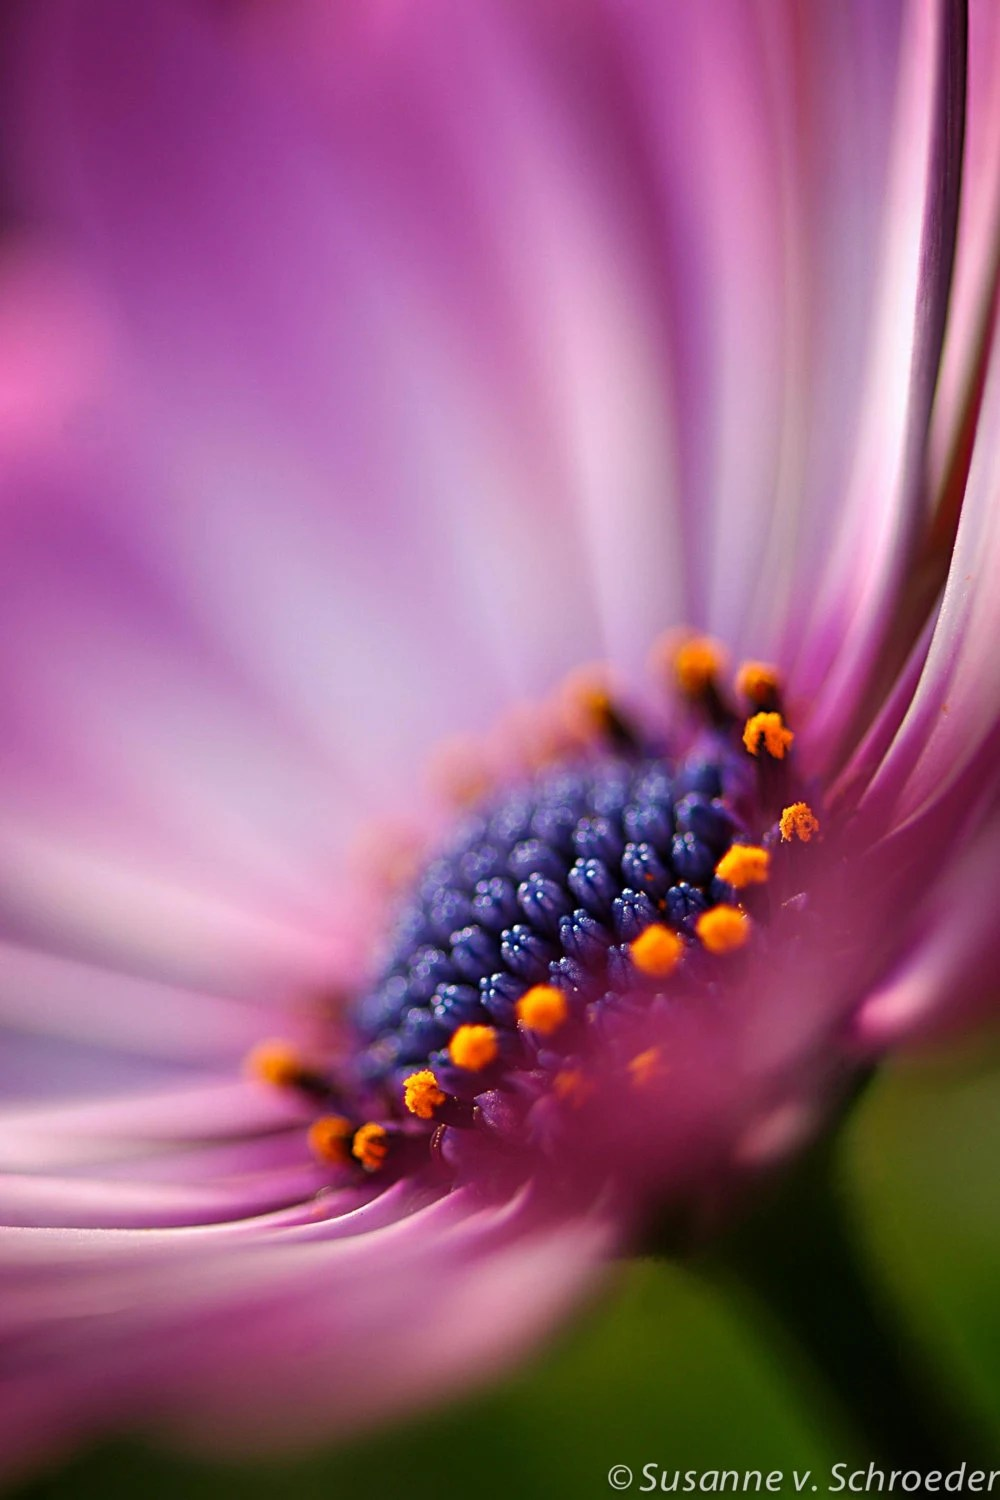 Blue Animal Print Wallpaper Nature Photography African Daisy Flower By